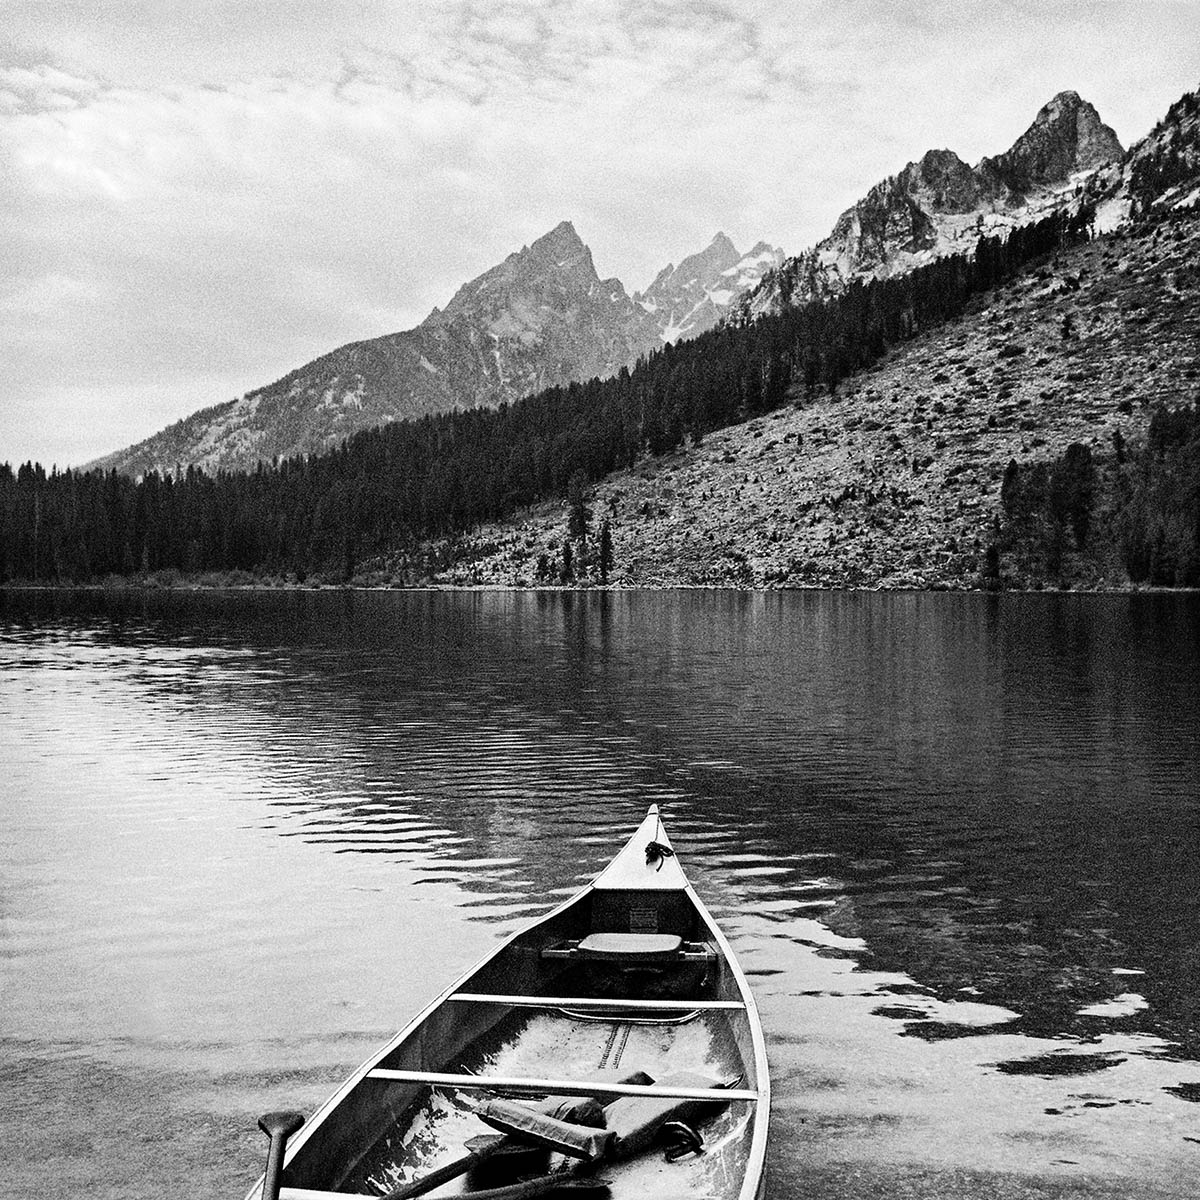 String Lake, Grand Tetons, Wyoming, 1998